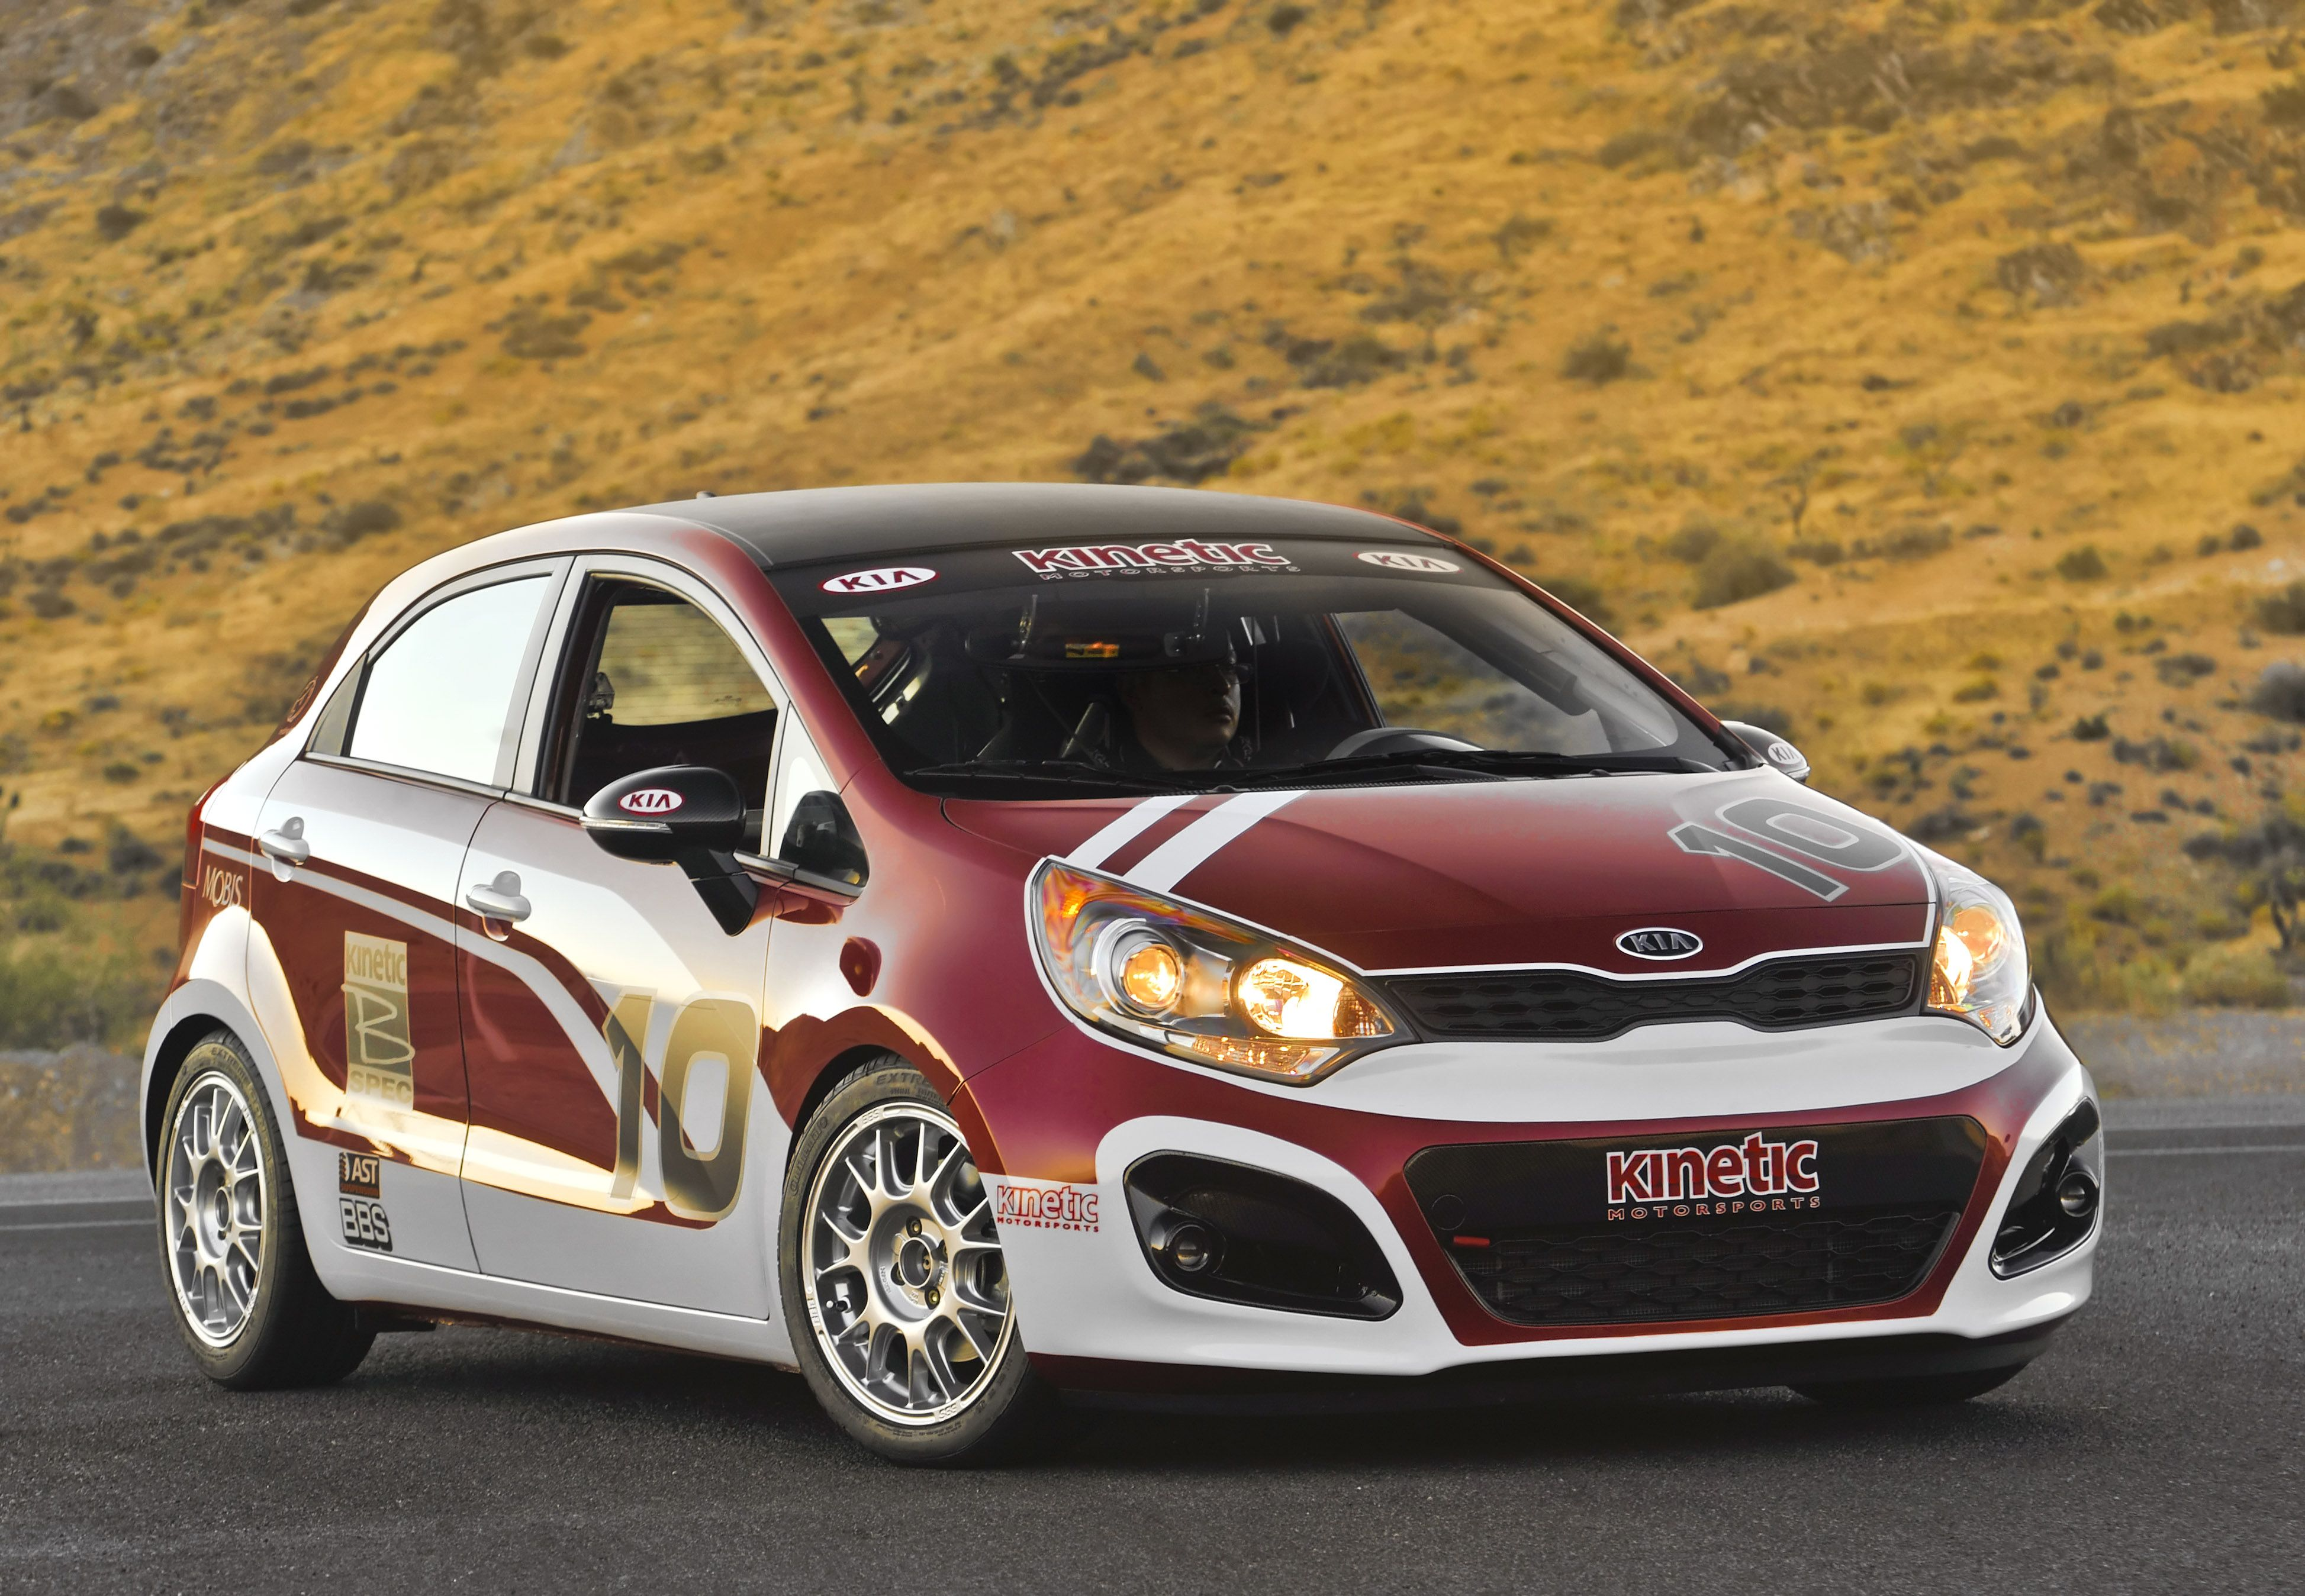 The Rio 5 Door B Spec Racecar Will Compete Against A Variety Of